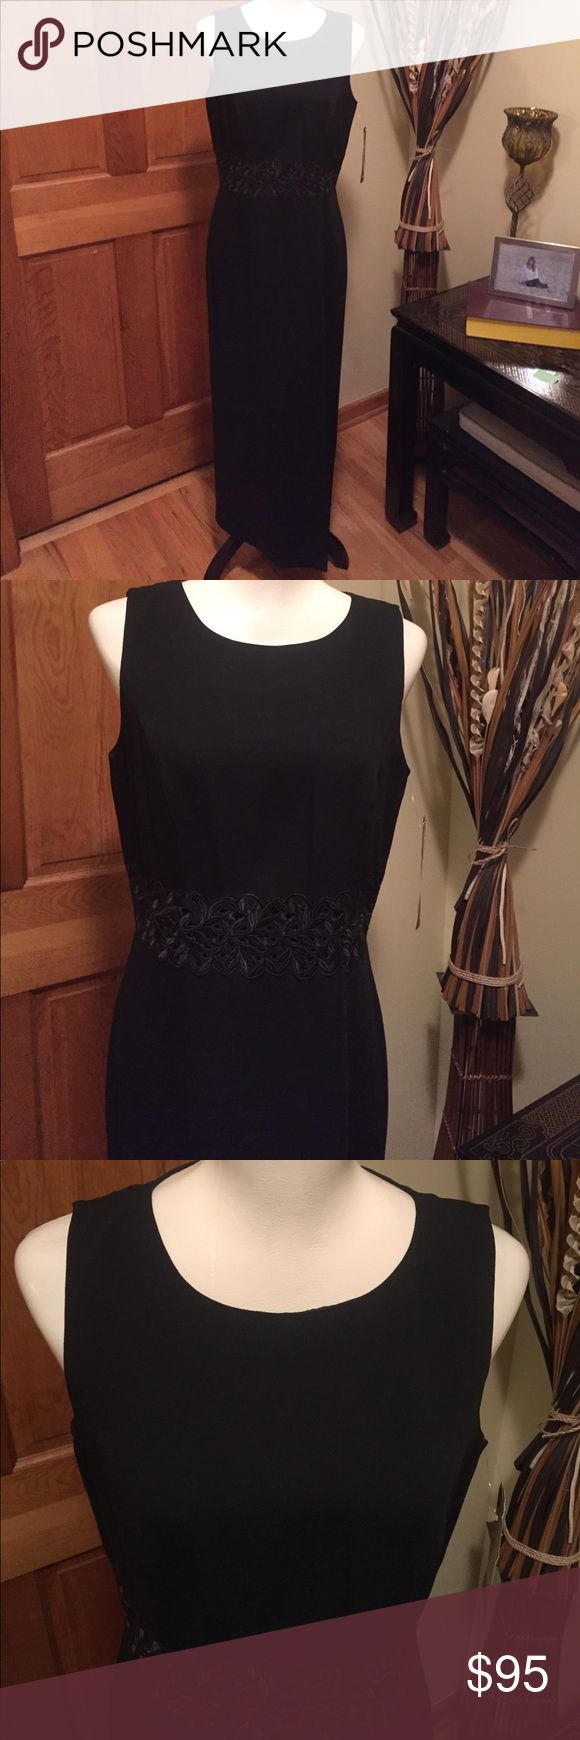 Donna Ricco Black Cotton Dress